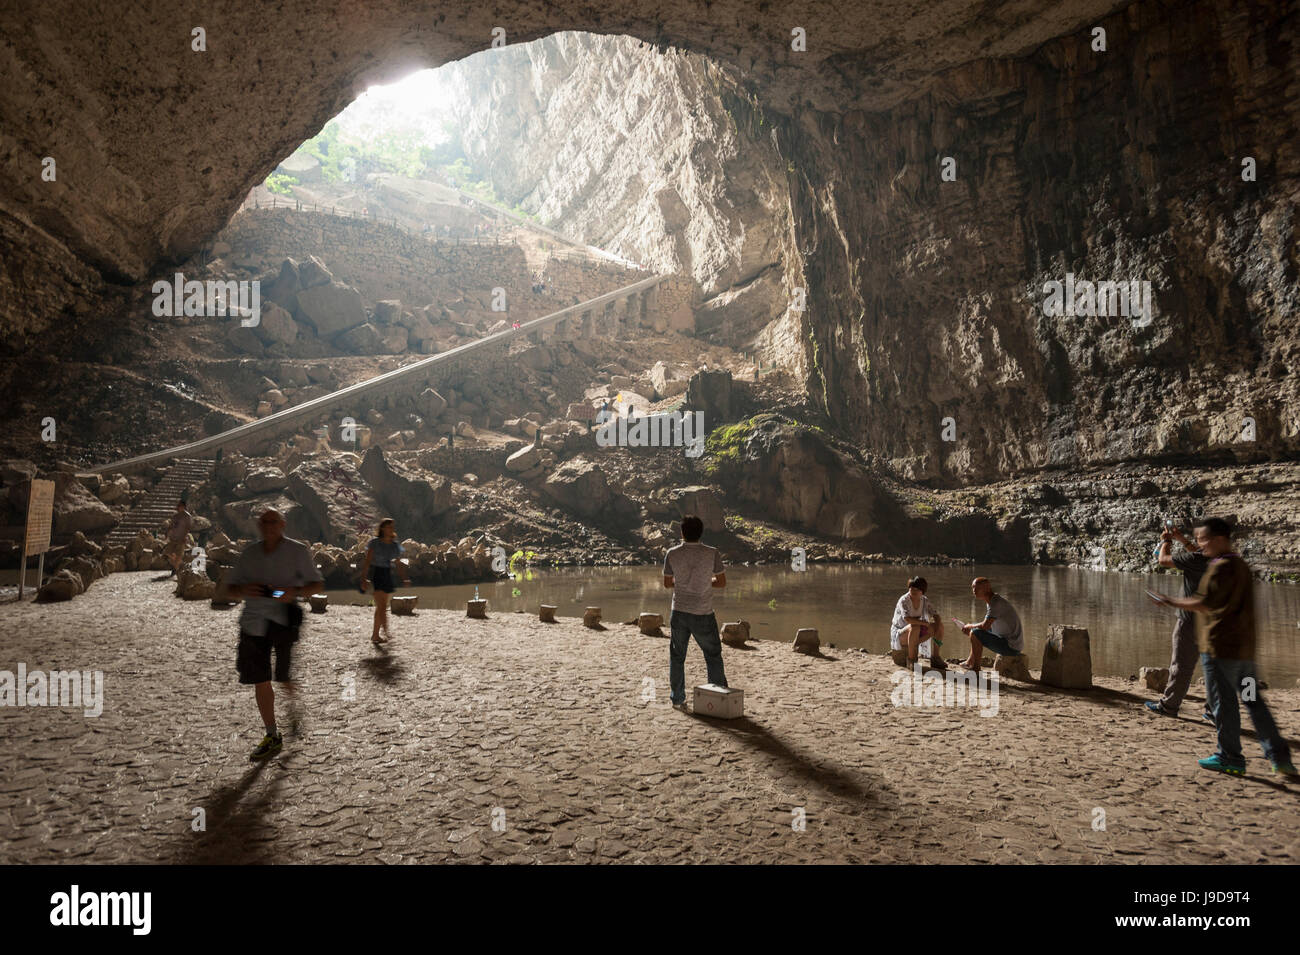 Karst Cave at Xinwen Stone Sea Global Geo Park, Sichuan Province, China, Asia - Stock Image